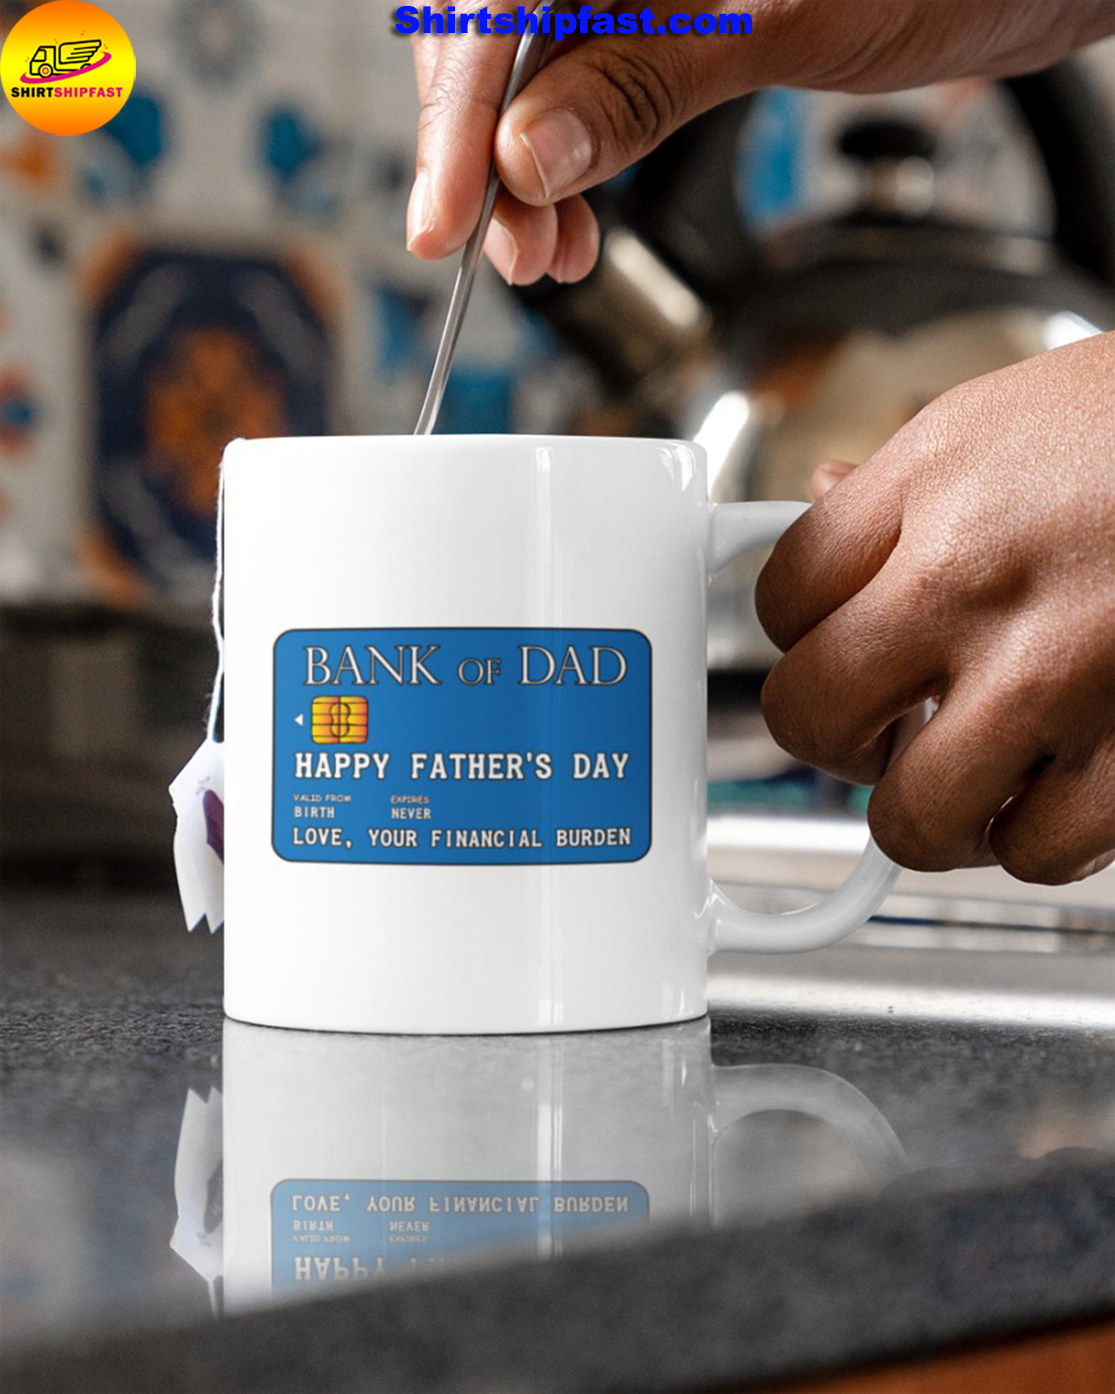 Bank of dad Happy father's day mug - Picture 3